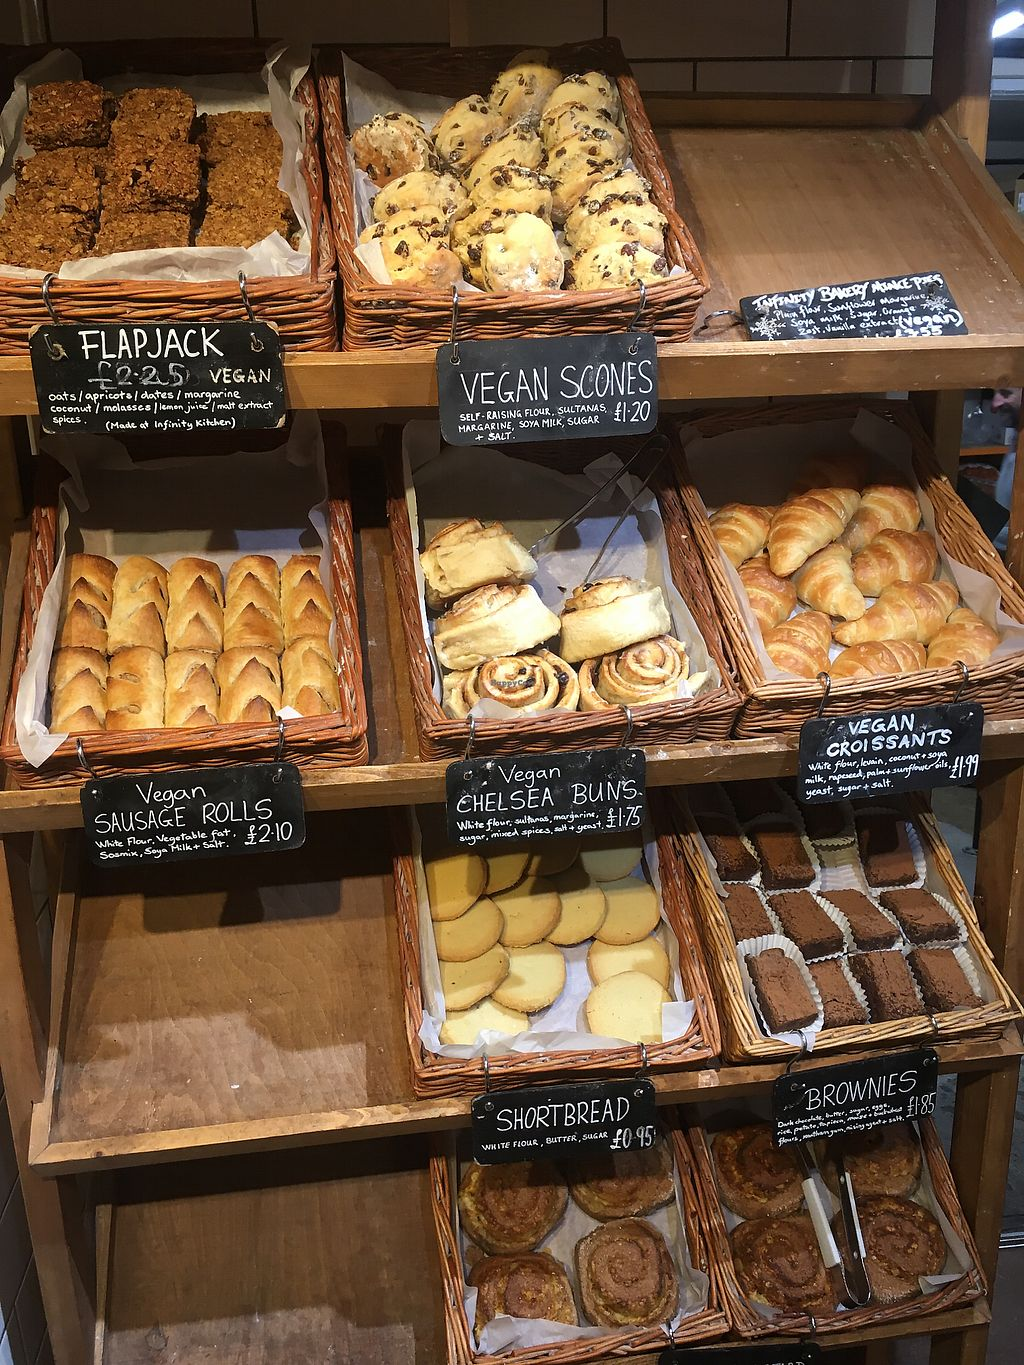 "Photo of Infinity Foods  by <a href=""/members/profile/Tonivegan"">Tonivegan</a> <br/>Pastries  <br/> November 24, 2017  - <a href='/contact/abuse/image/628/328793'>Report</a>"